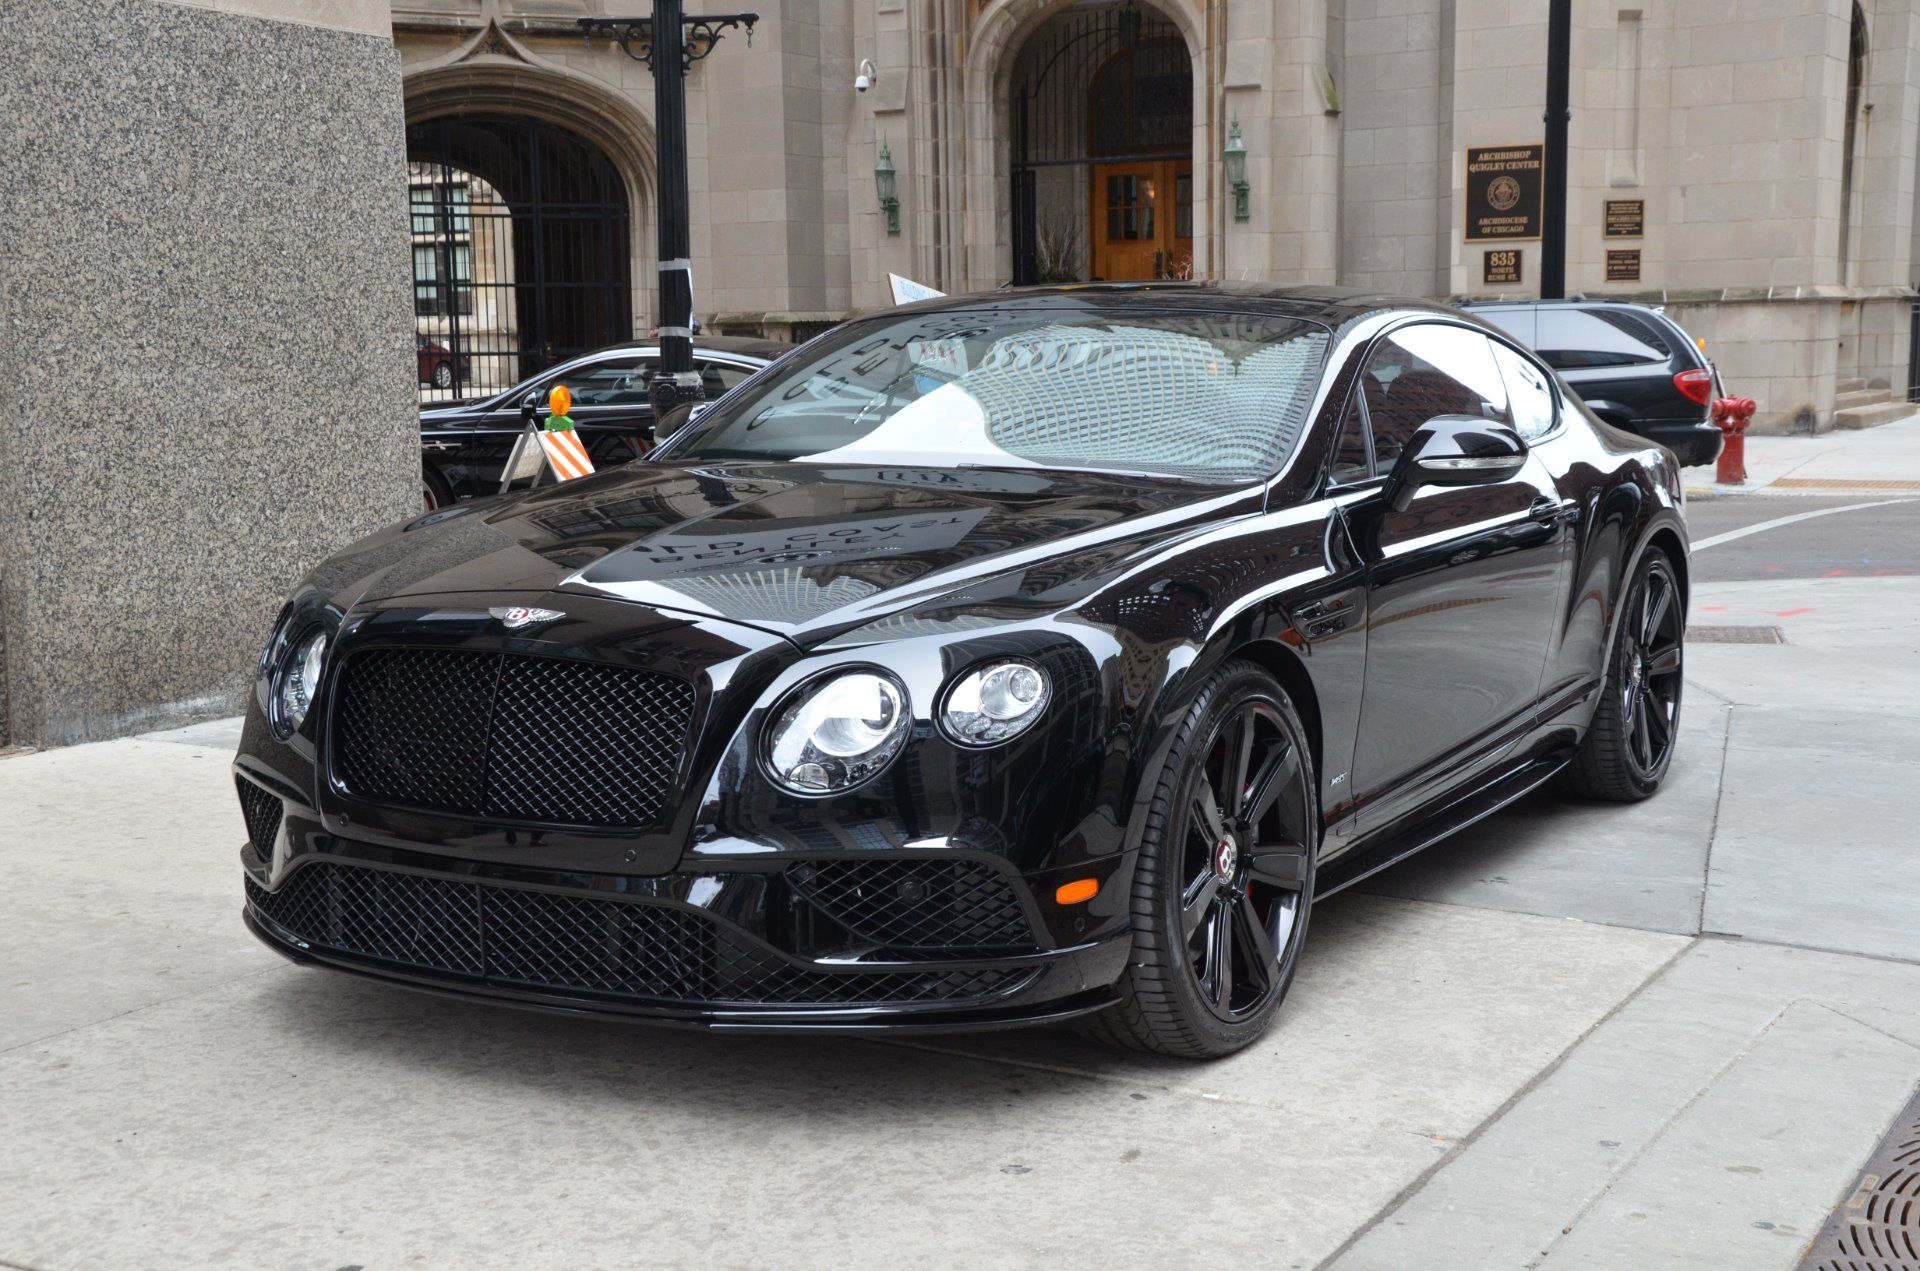 2016 bentley continental gt v8 s cars pinterest bentley 2016 bentley continental gt v8 s vanachro Gallery